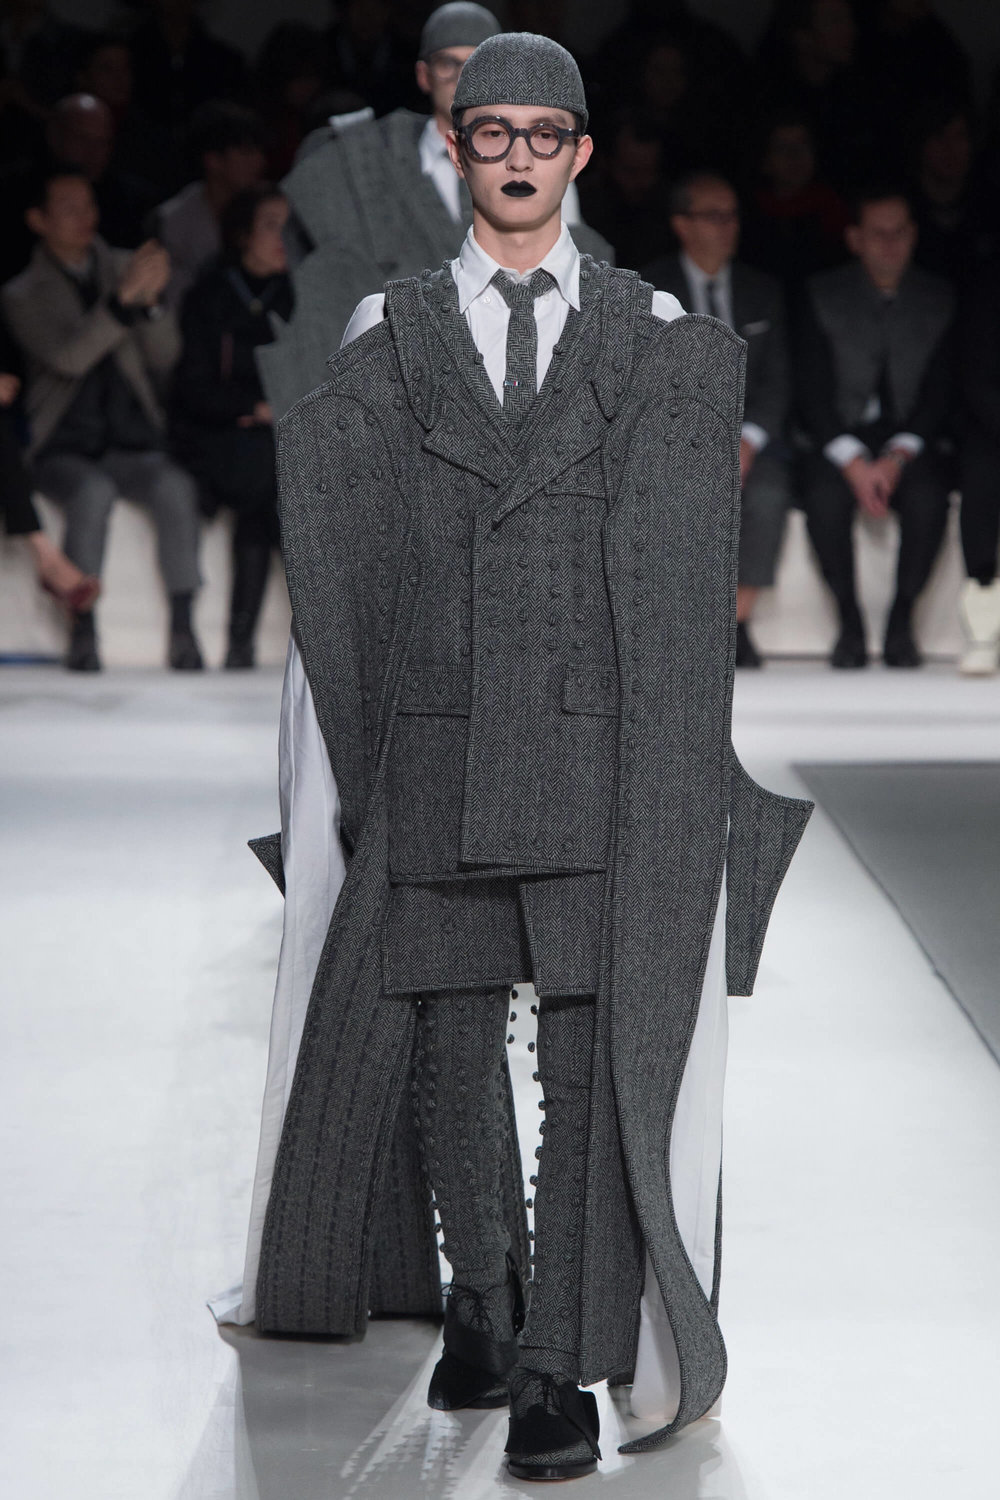 Thom-Browne-Never-Fails-to-Amaze-Thatsitmag-Thatsitmagazine-GraceBrookes-Paris-Fashion-week5.jpg